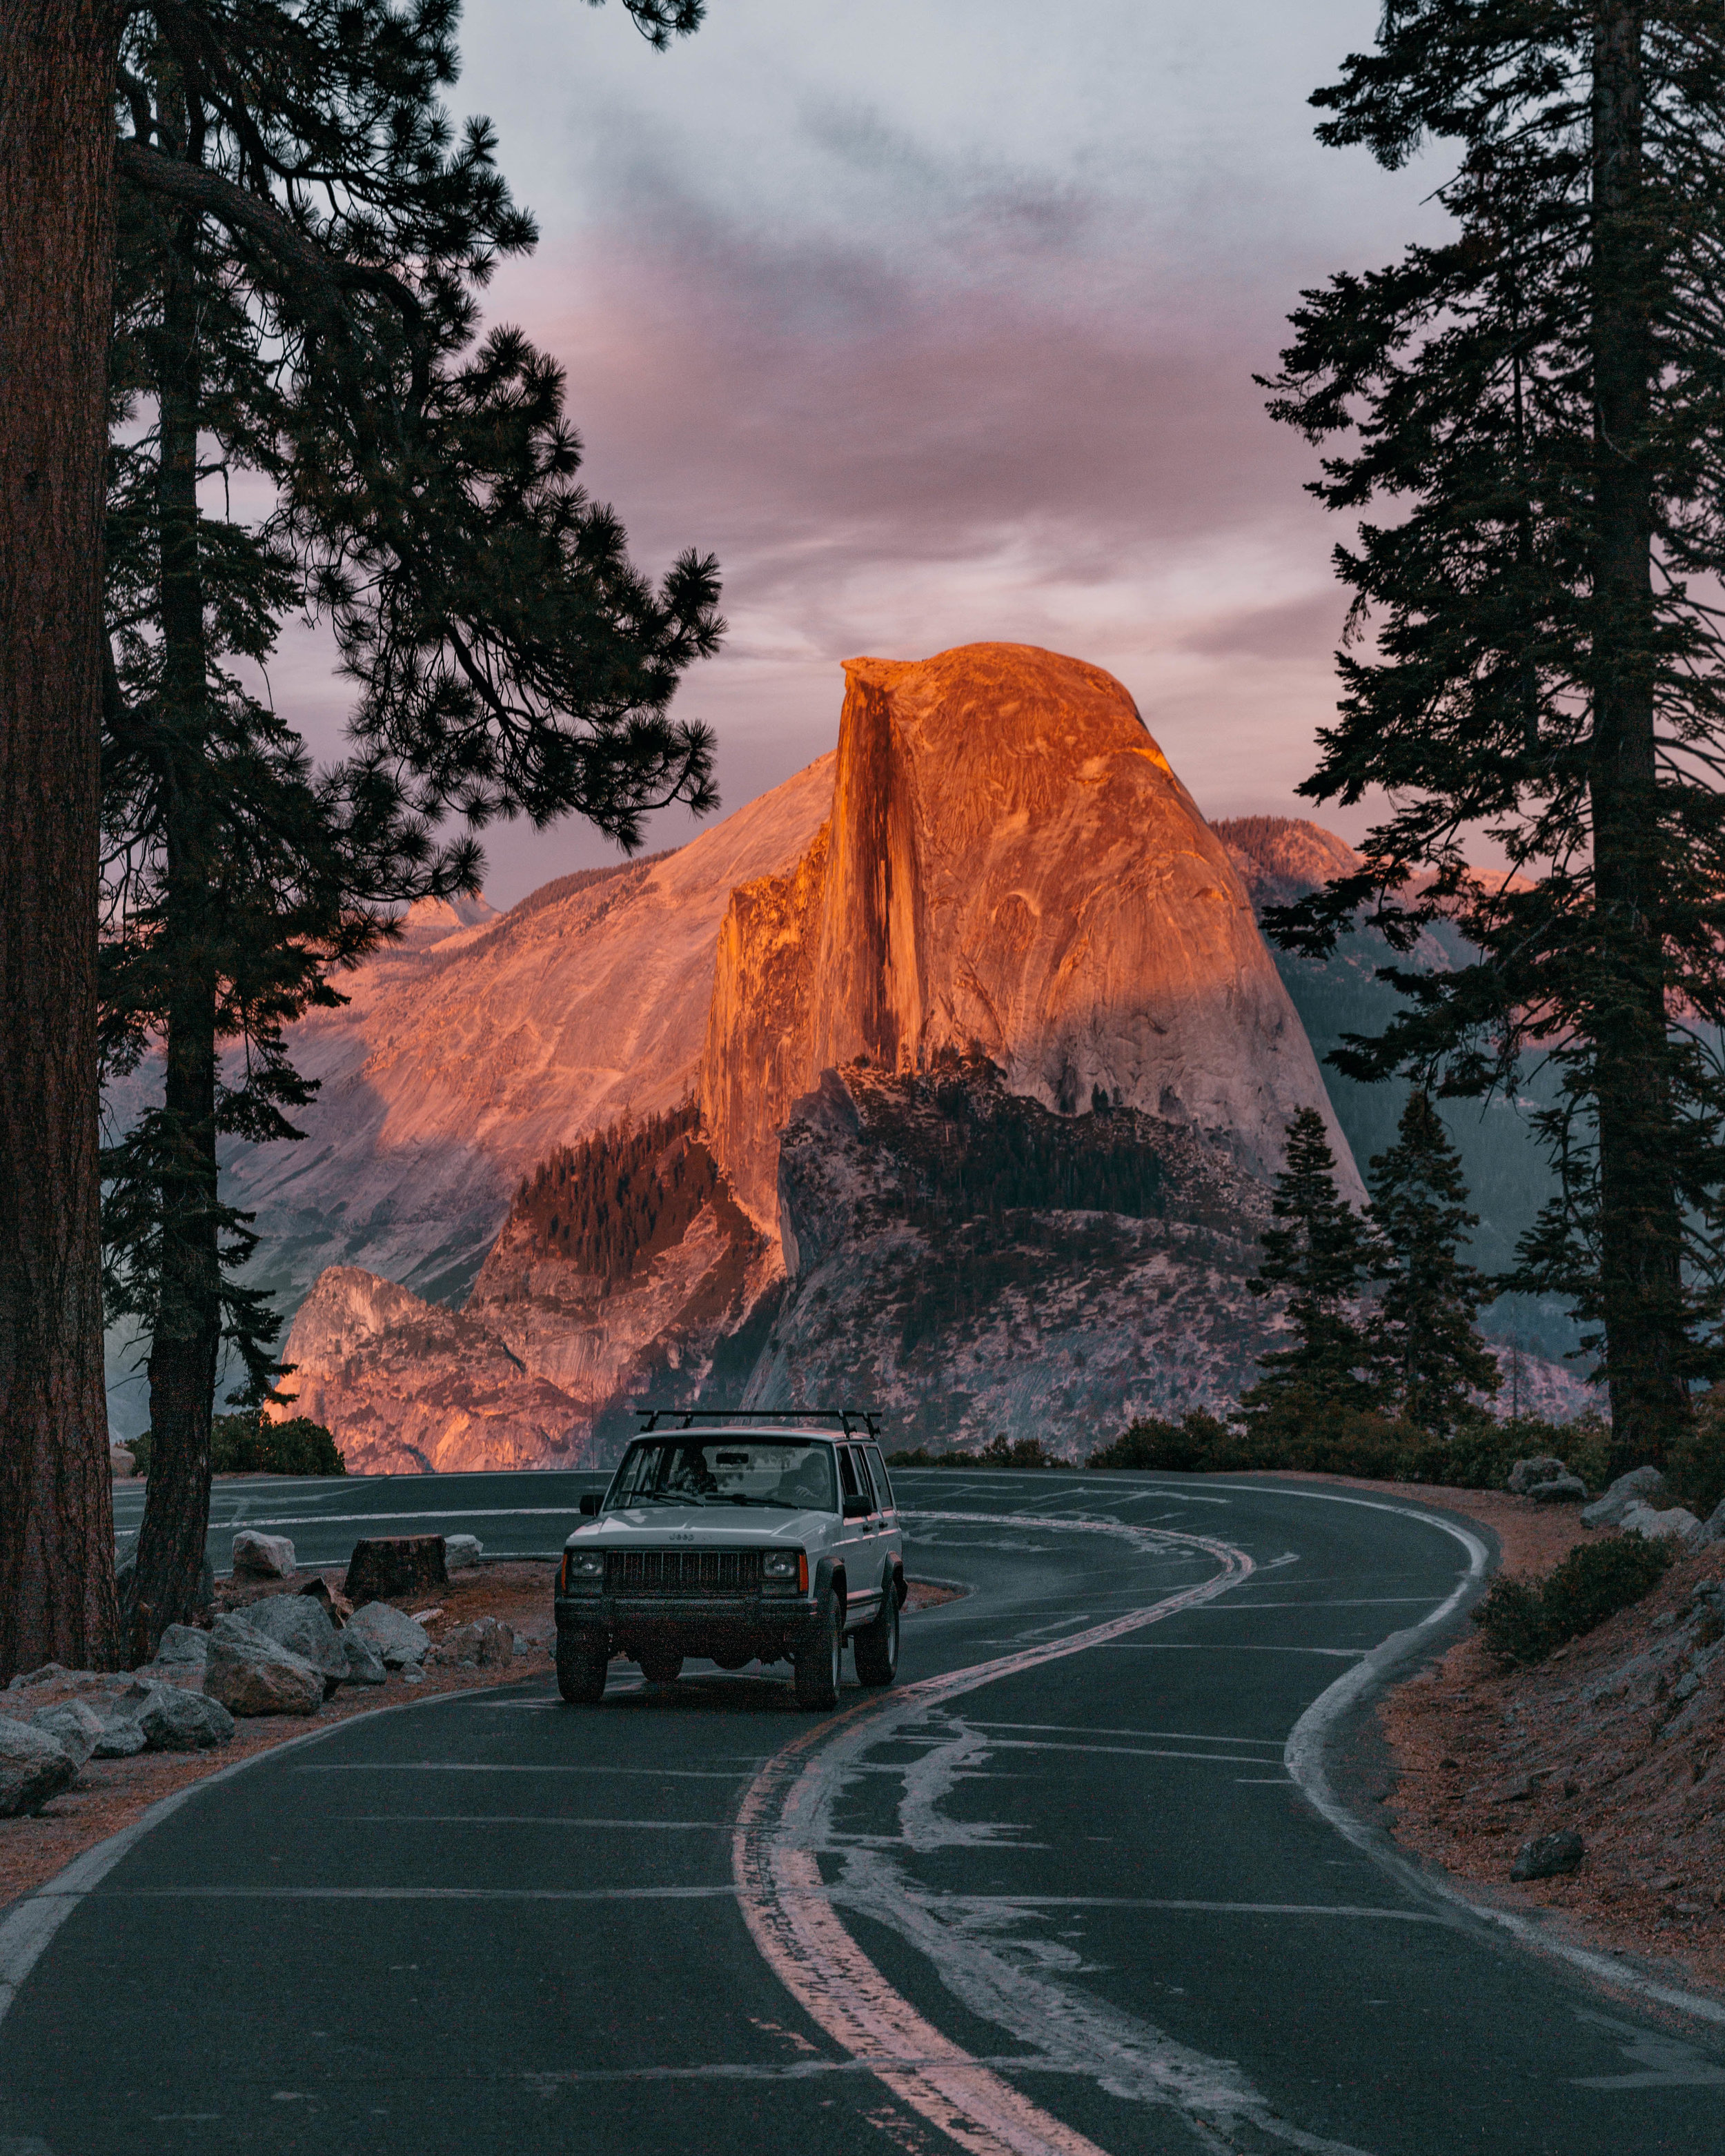 A an old '98 Jeep in front of the iconic Half Dome. If you stay past sunset, watch the dome for twinkling lights of climbers trying to reach the summit.